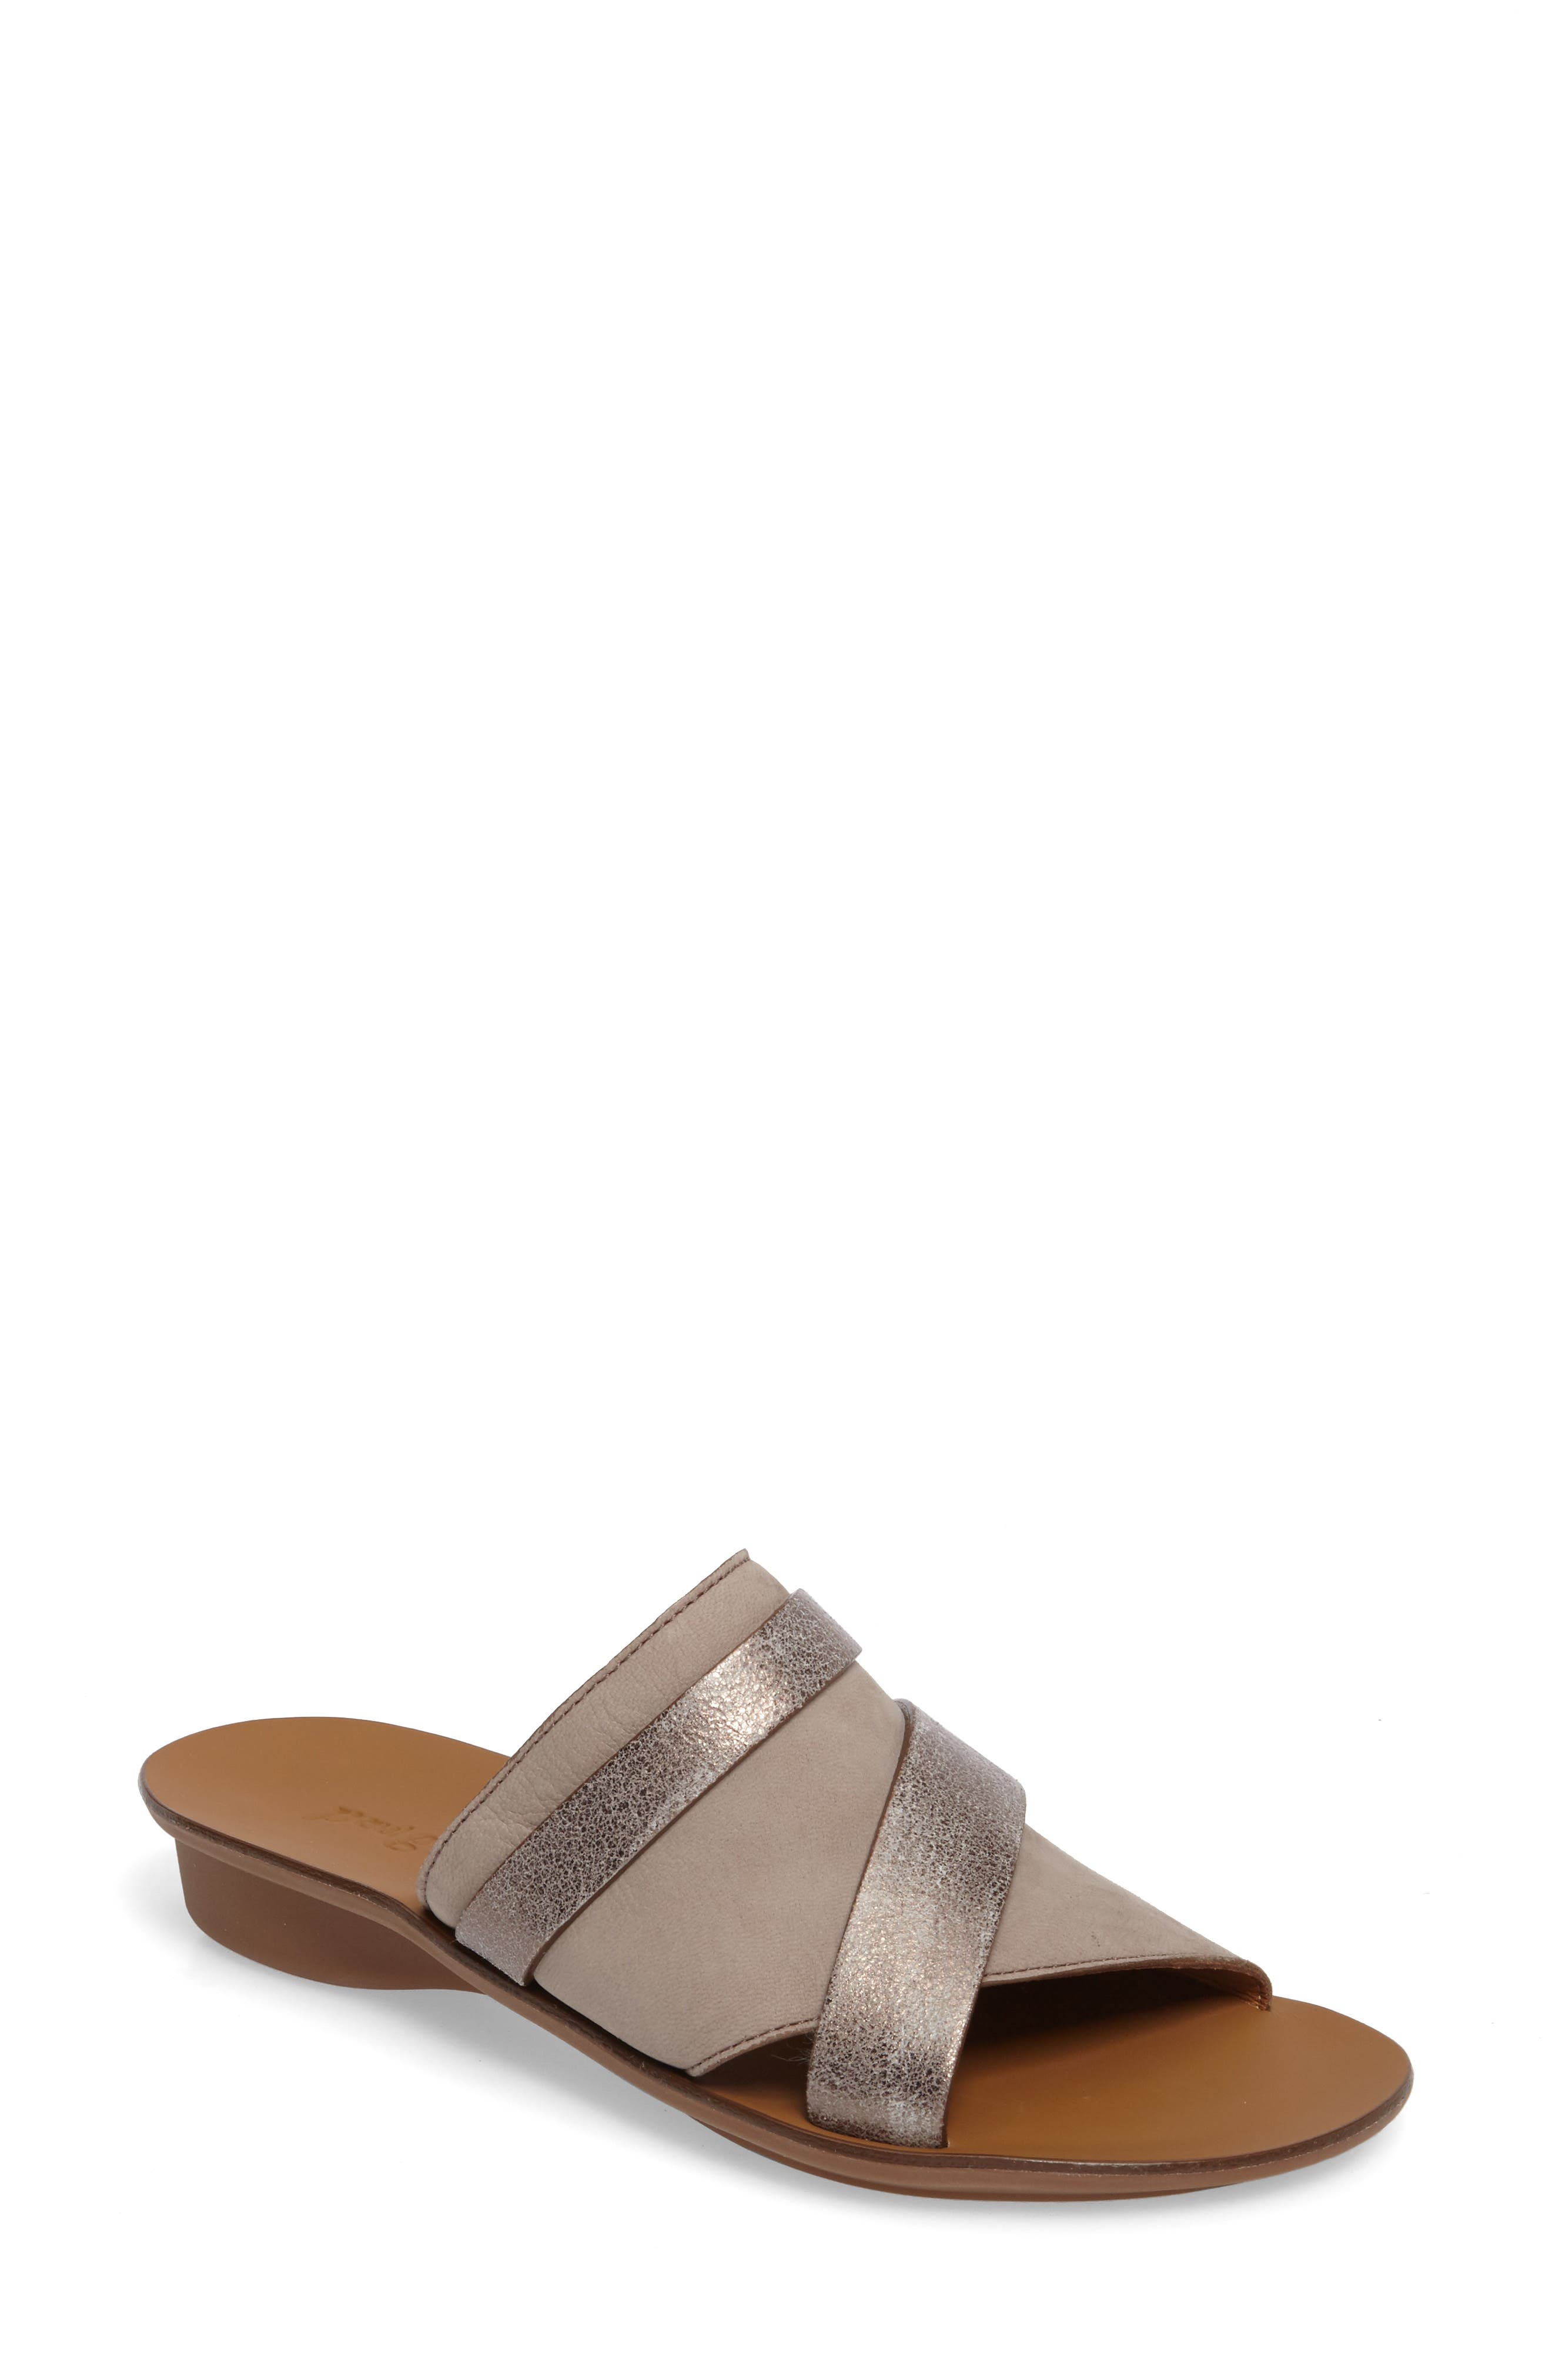 PAUL GREEN 'Bayside' Leather Sandal in Grey